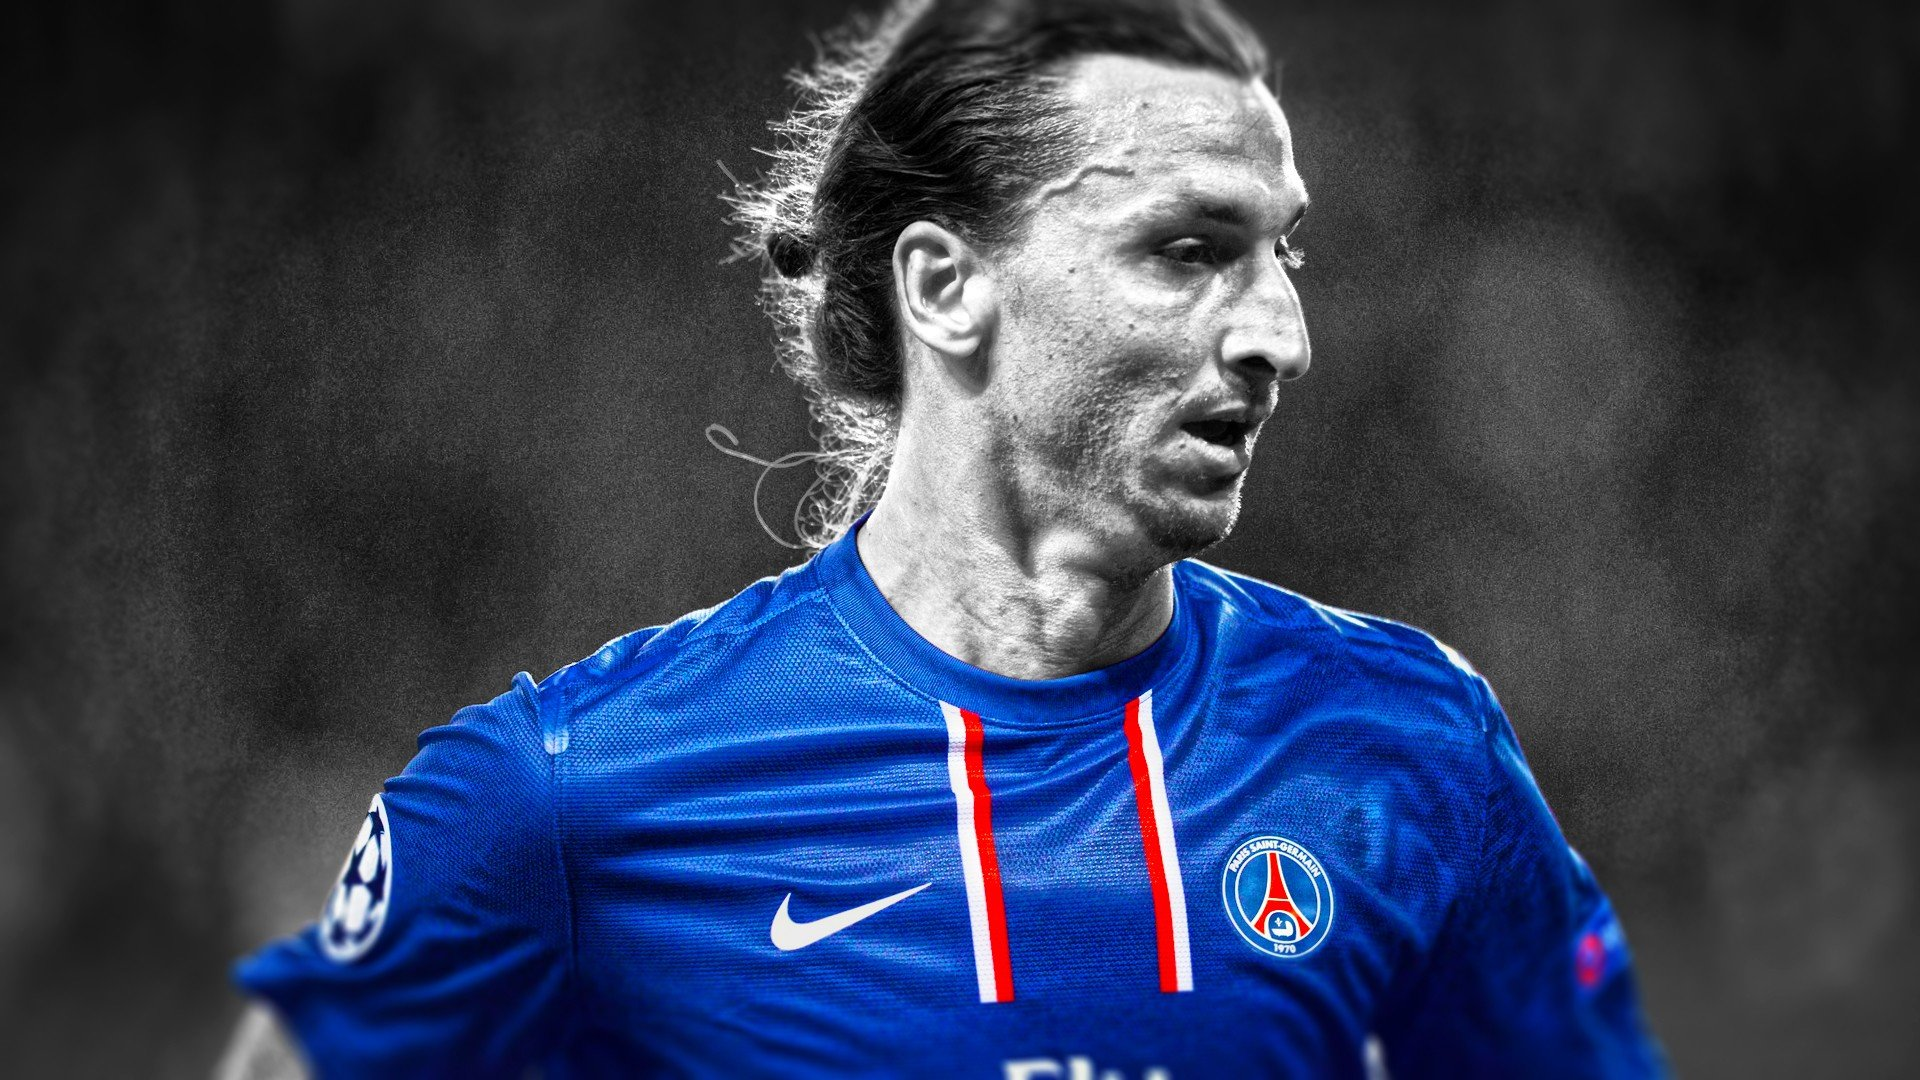 Awesome Zlatan Ibrahimovic free wallpaper ID:231519 for hd 1920x1080 PC